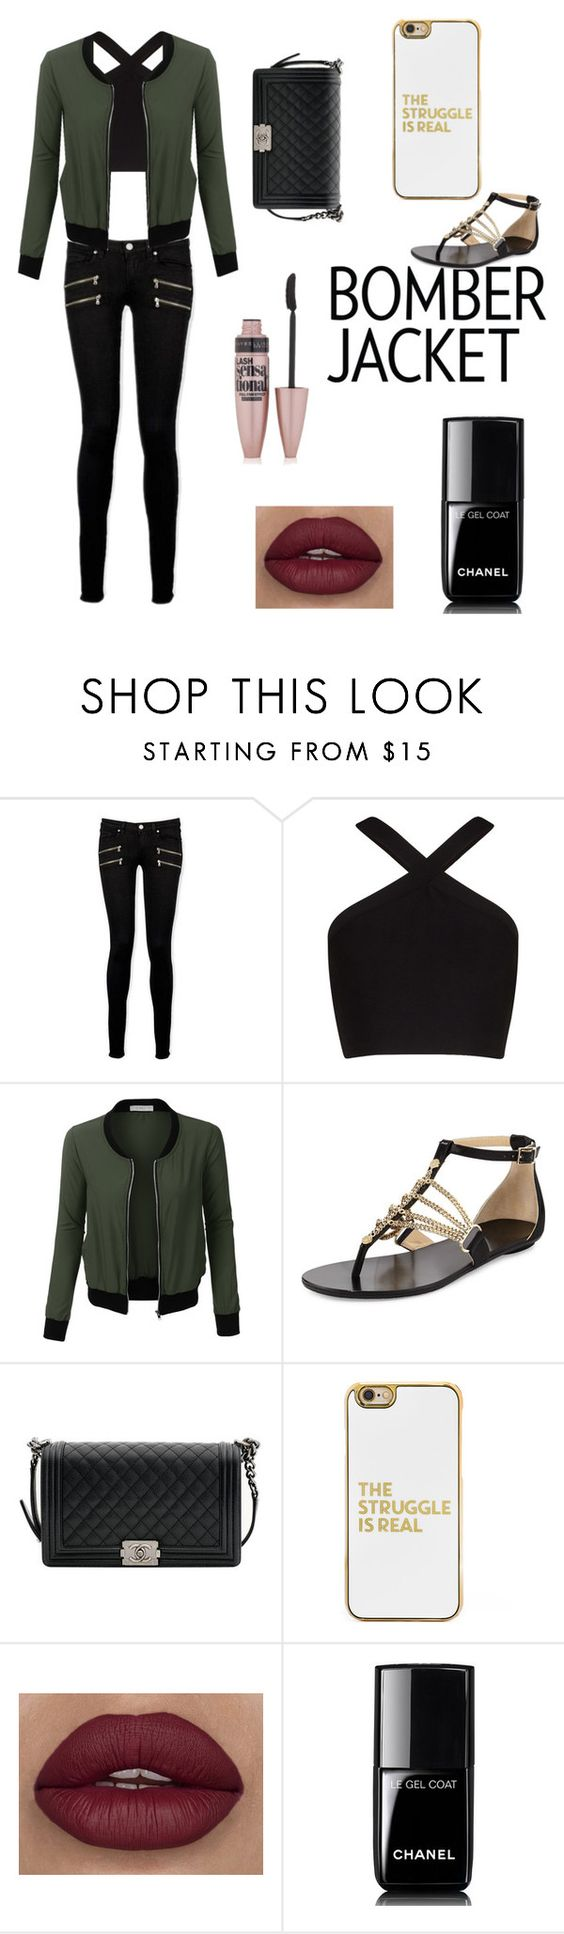 """bomber jacket"" by ptcliff ❤ liked on Polyvore featuring Paige Denim, BCBGMAXAZRIA, LE3NO, Jimmy Choo, Chanel, BaubleBar, Maybelline and bomberjackets"